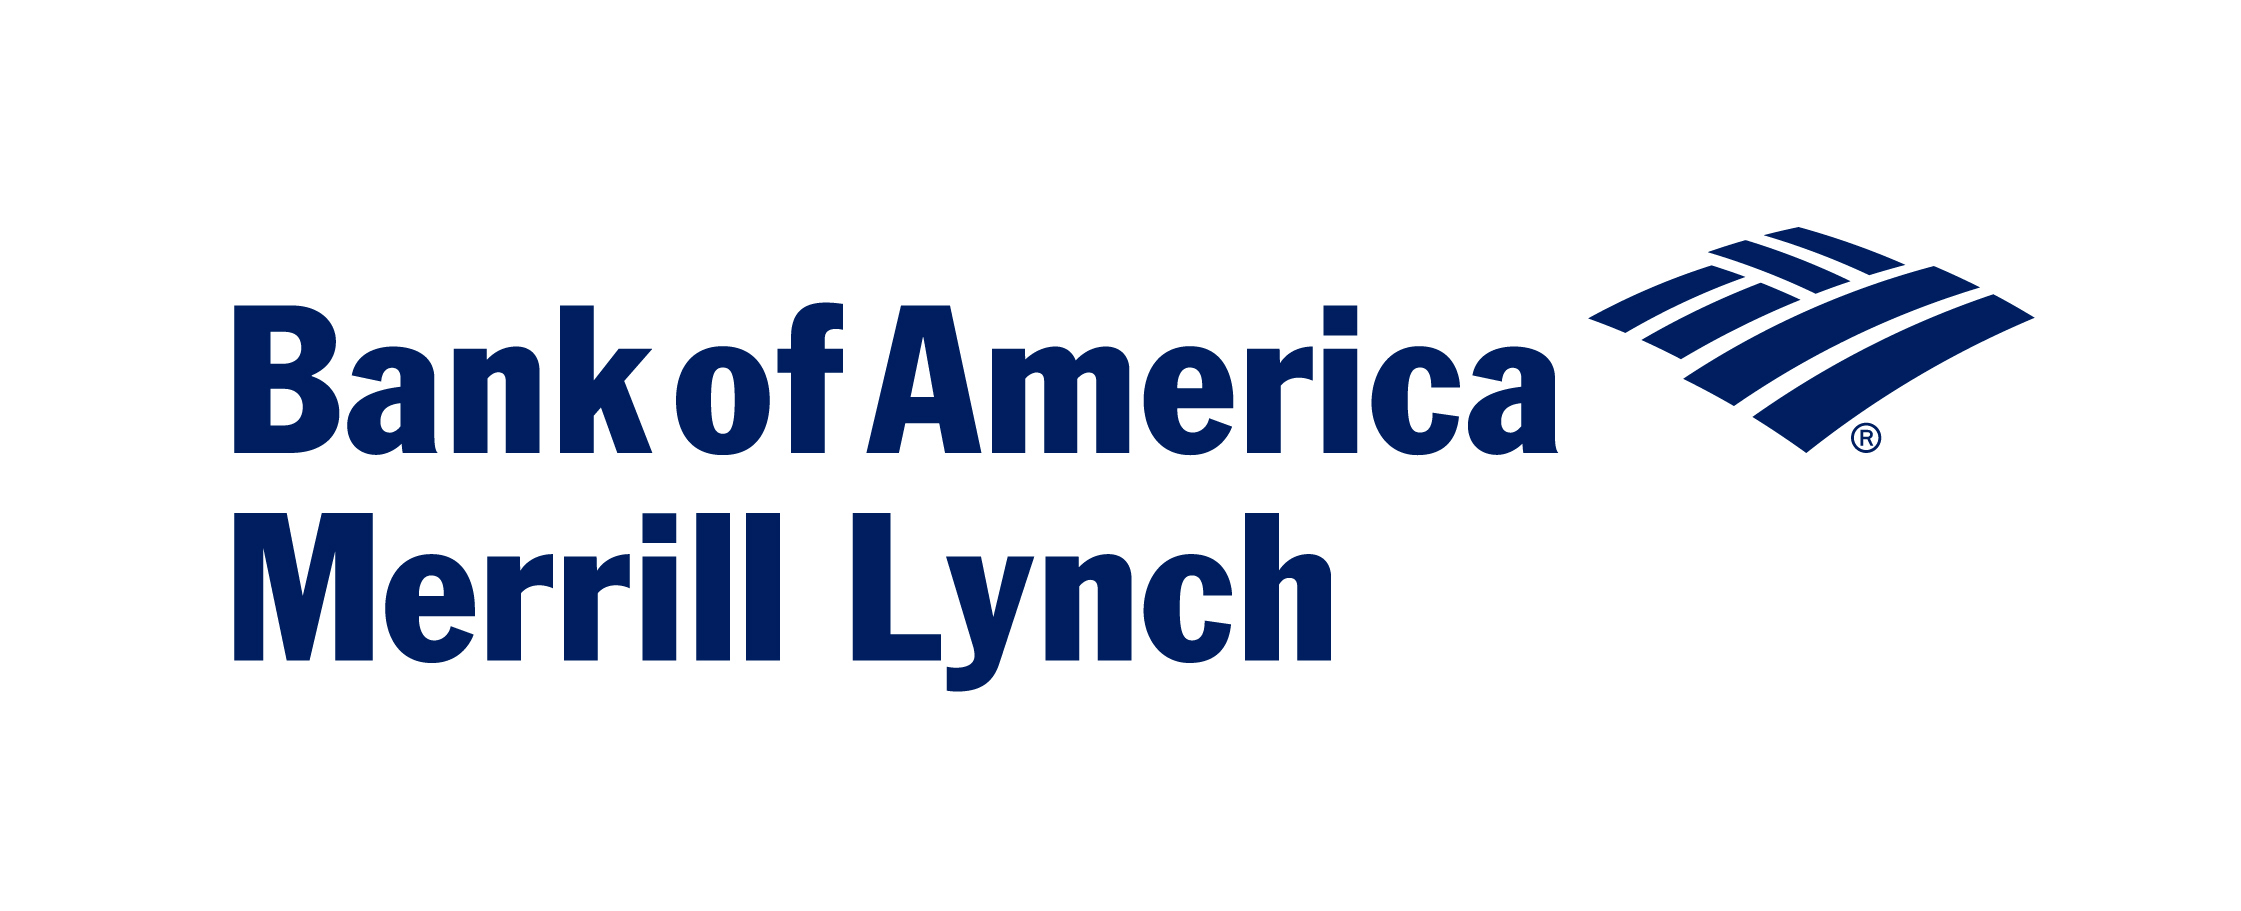 Bank_of_America_Merrill_Lynch-Navy_2014.jpg